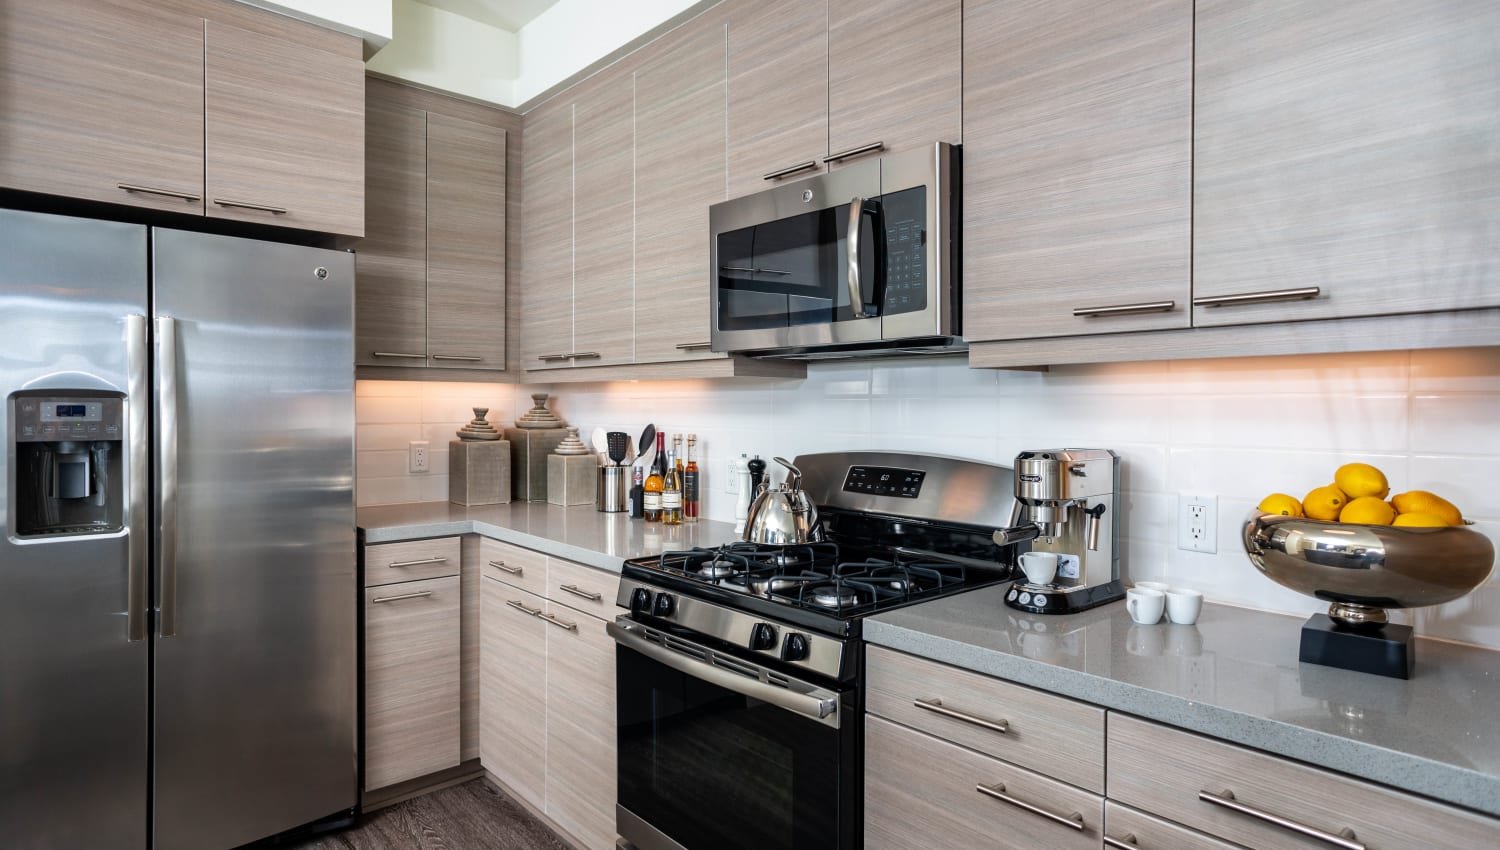 Stainless-steel appliances and quartz countertops in a model home's kitchen at Fusion Apartments in Irvine, California